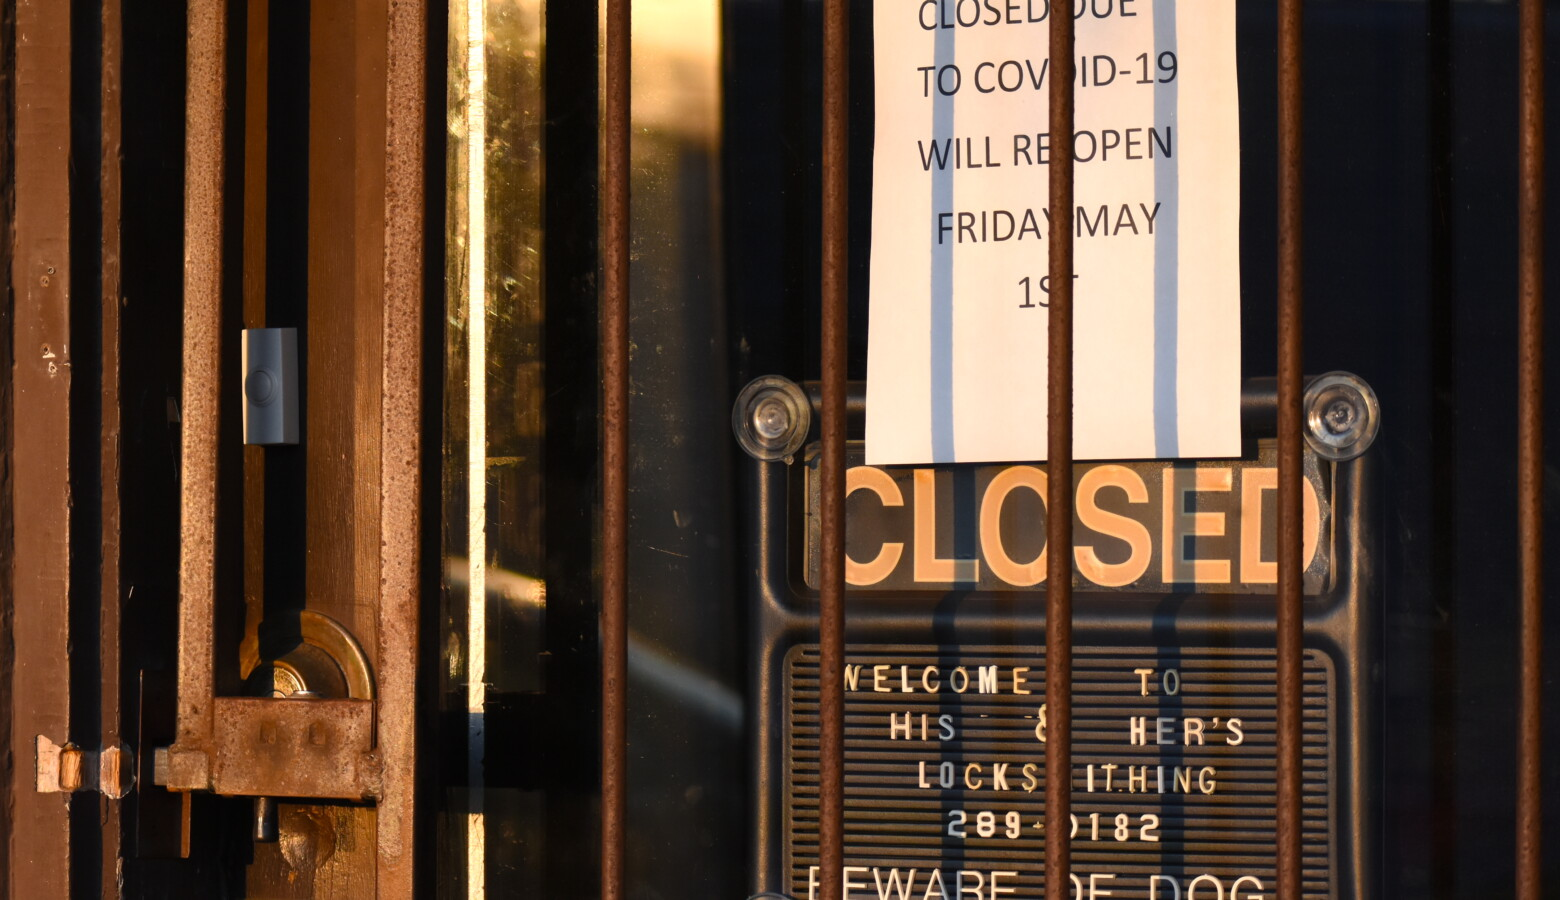 A business in South Bend closed due to COVID-19. (Justin Hicks/IPB News)